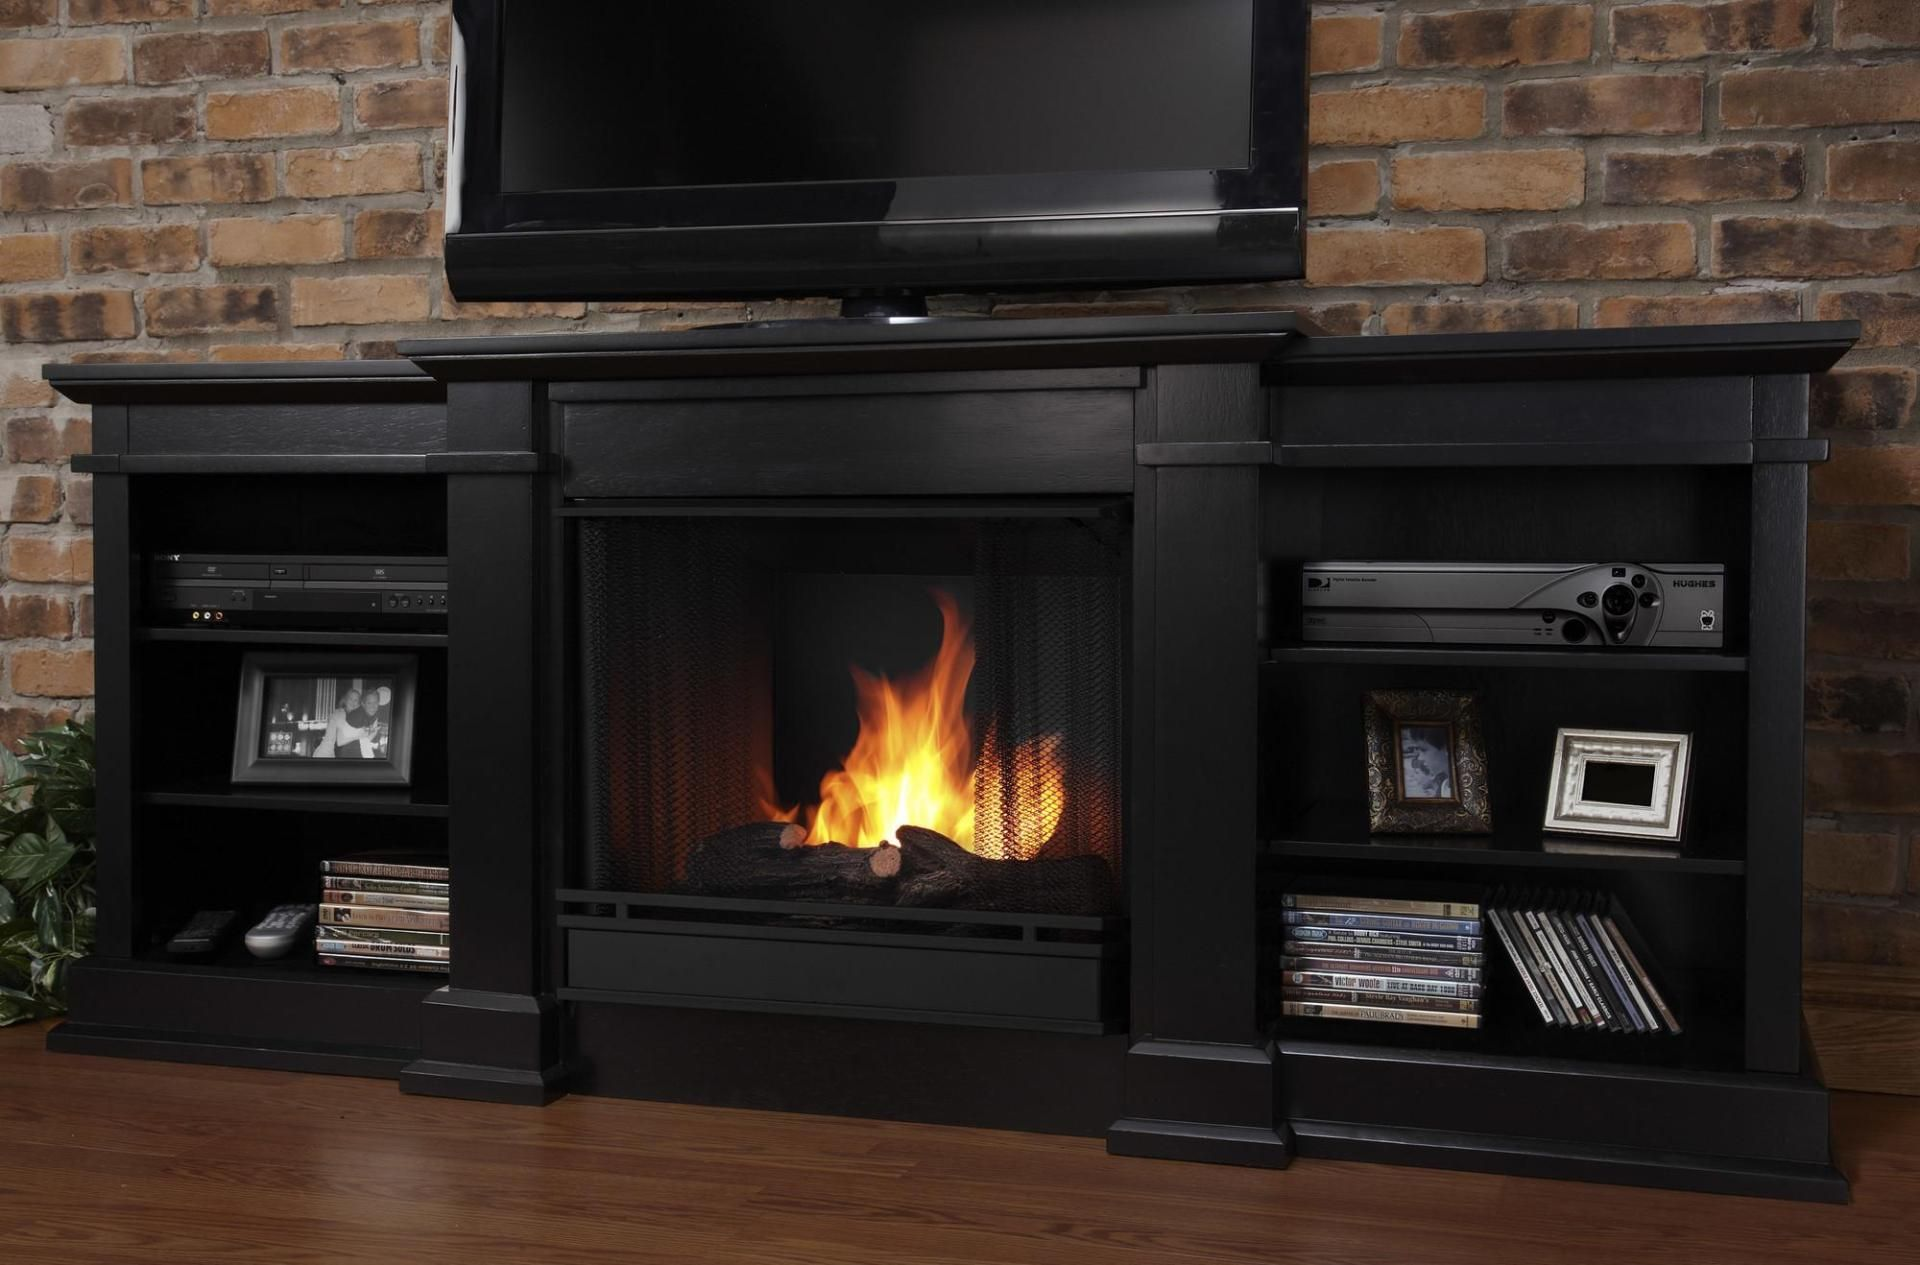 heater house tv fireplace electric lowes your fake with warm interior keeping interesting modern way of stand